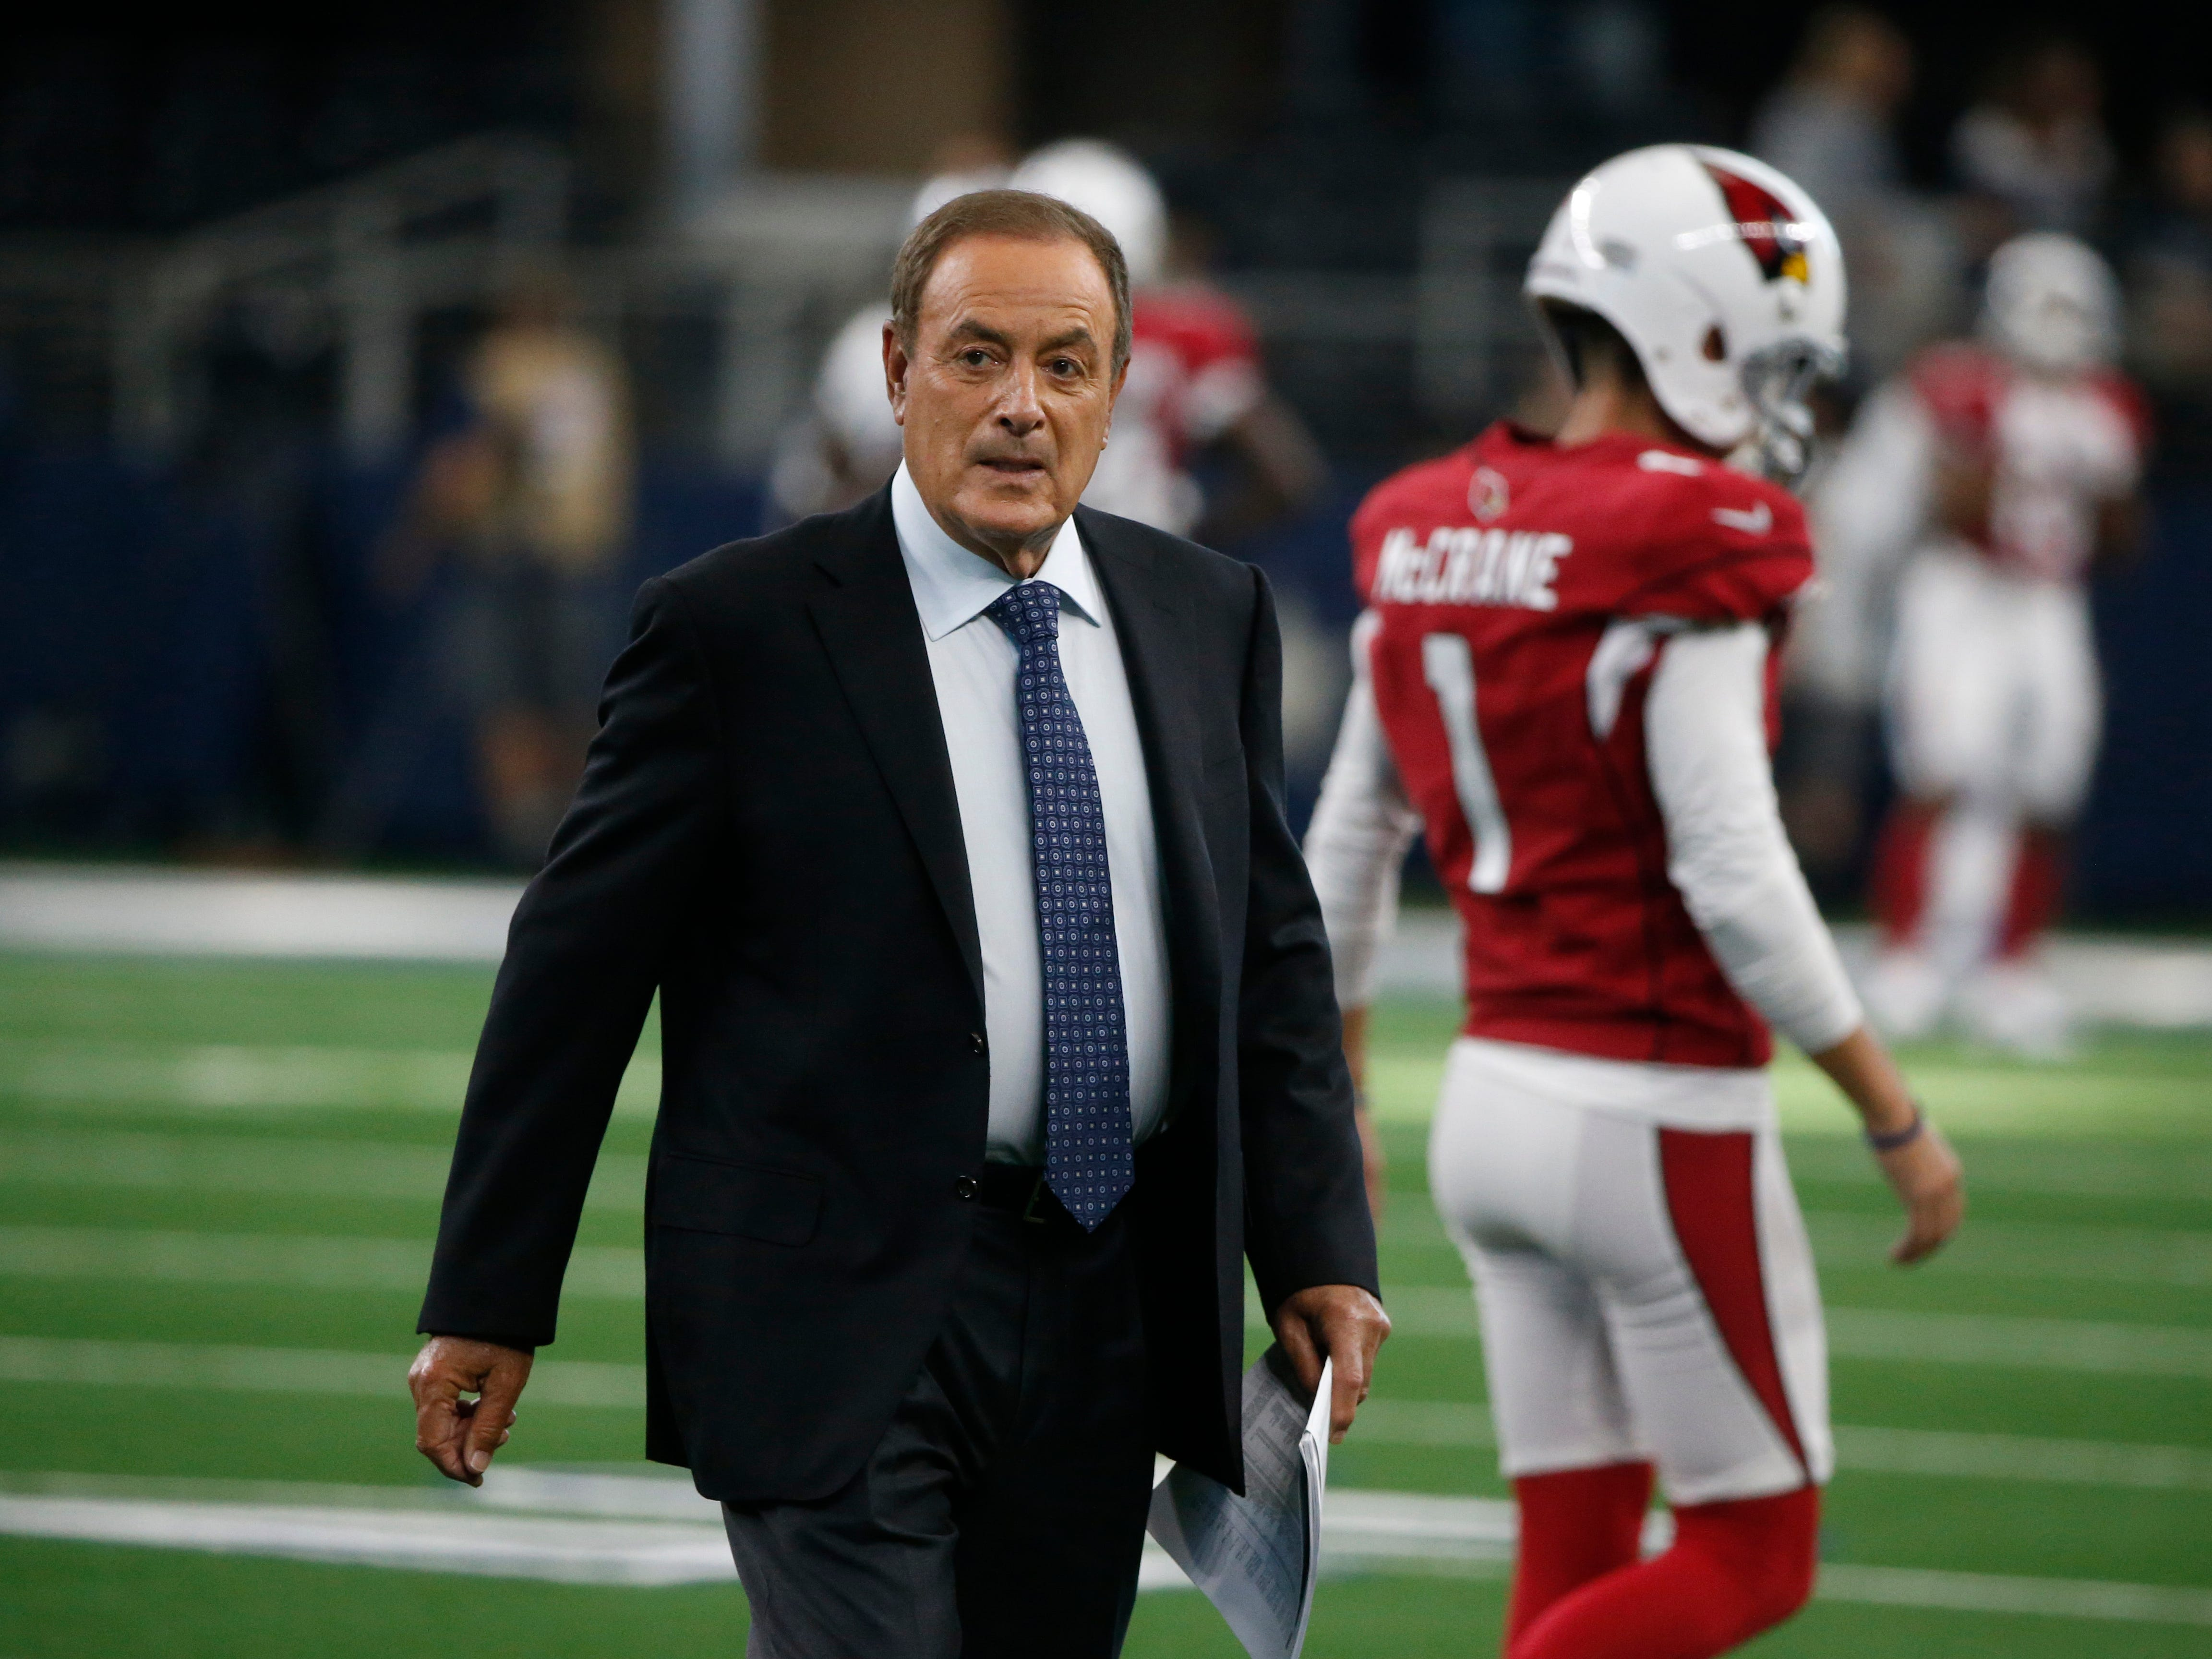 Al Michaels walks on the field before an preseason NFL football game between the Dallas Cowboys and the Arizona Cardinals in Arlington, Texas, Sunday, Aug. 26, 2018. (AP Photo/Michael Ainsworth)